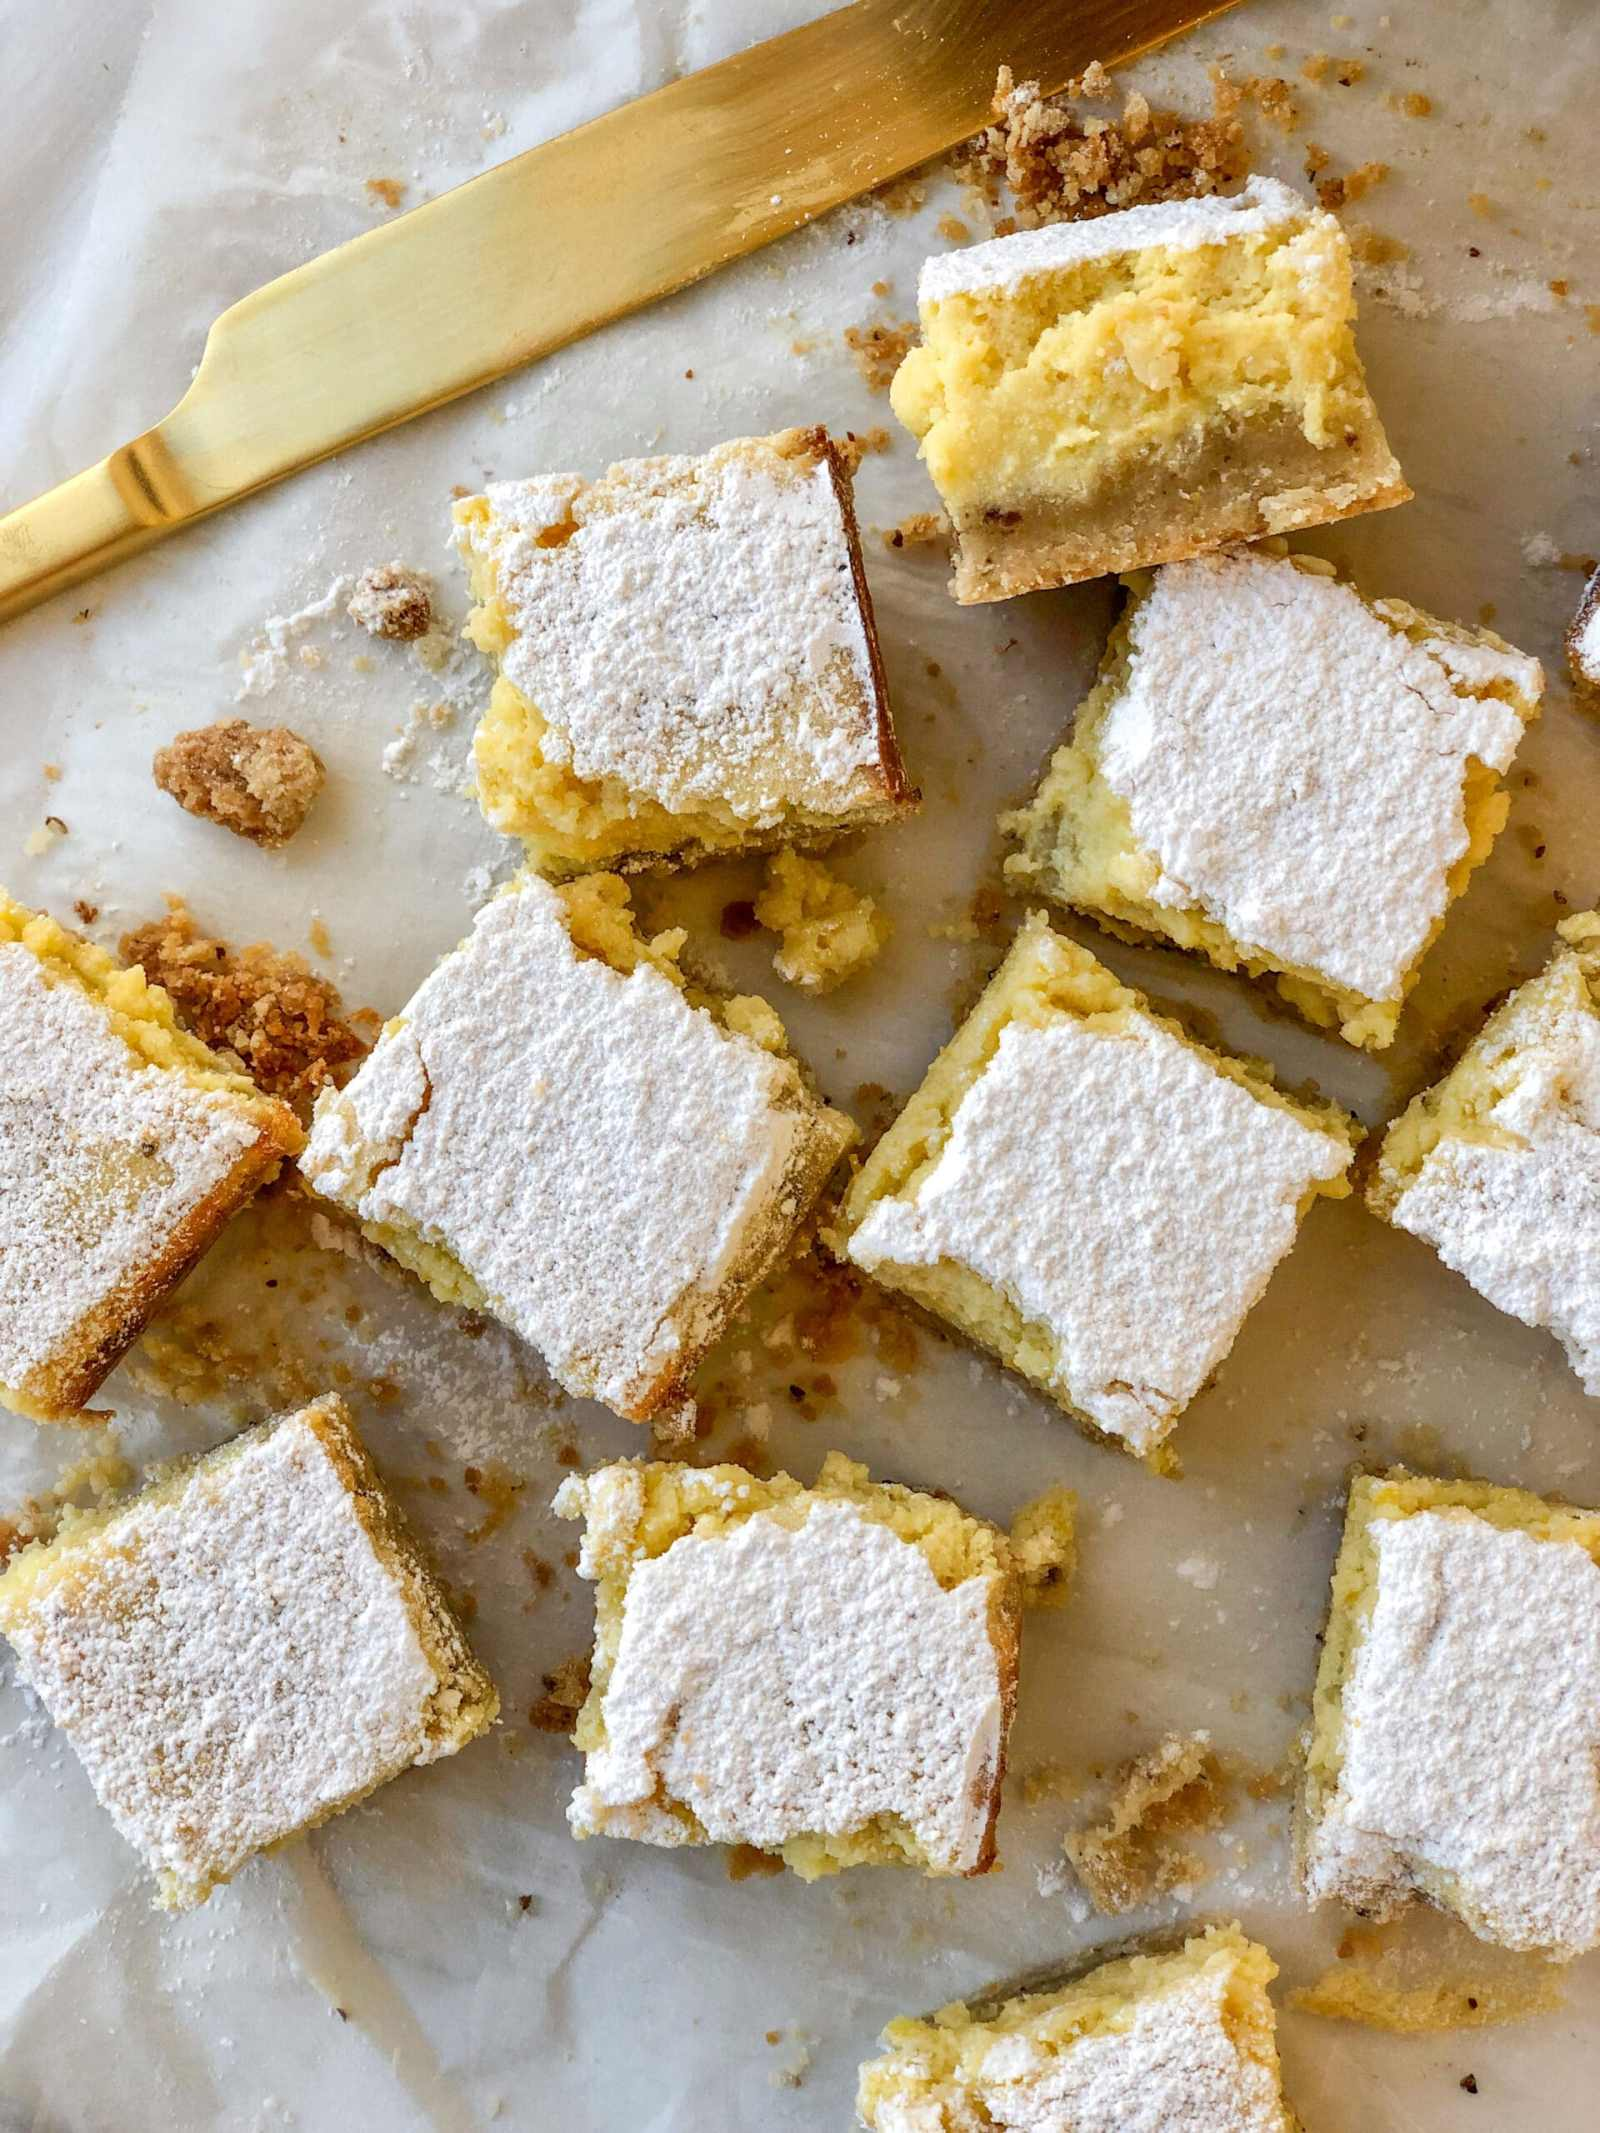 Lemon-Ricotta Bars with Flax Seed Infused Crust